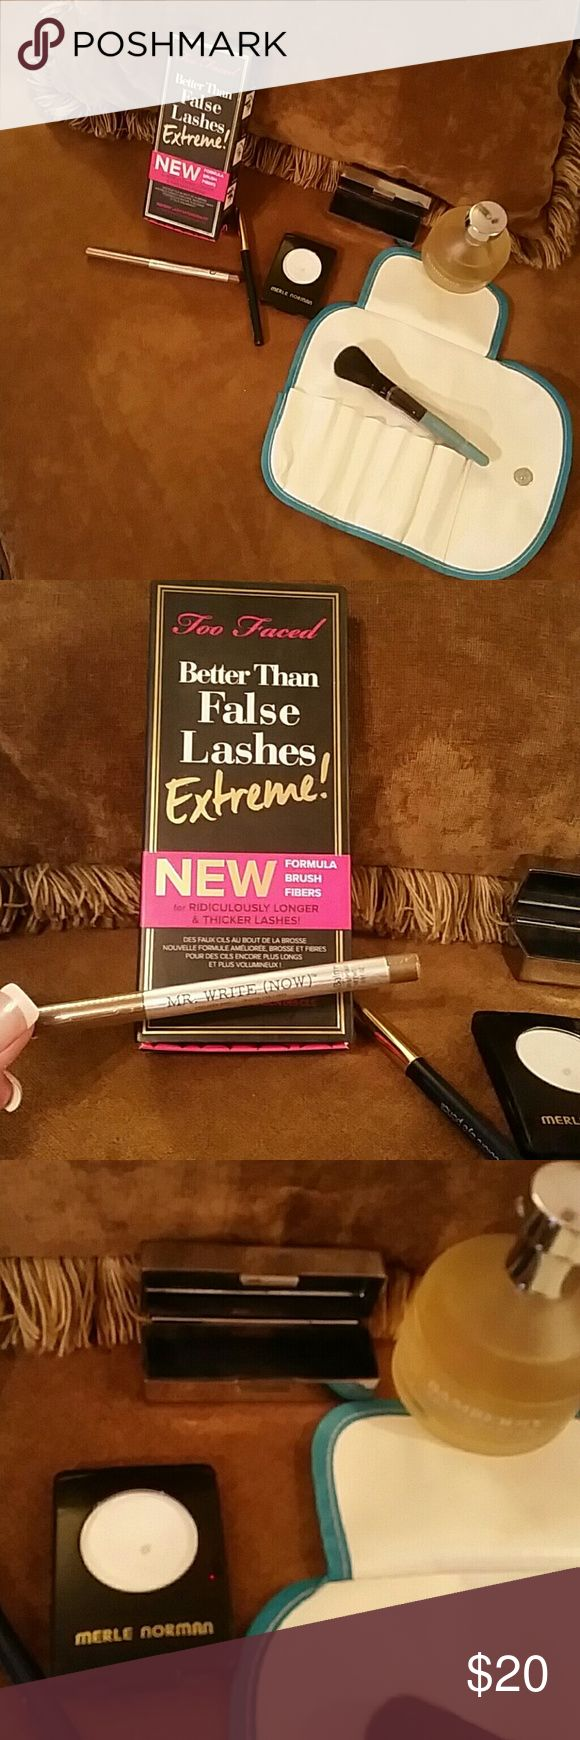 HIGH END MAKE UP BUNDLE!  👄 😘 😘 THIS MAKEUP BUNDLE IS FAB AND THEN SOME! 👄 INCLUDES TWO-FACED LASH EXTENSIONS,  have NEVER BEEN USED! It was a gift and I did not like the way the fibers looked, compared to what I usually use. Also MR. WRITE (NOW) never opened eyeliner as well as a silver lipstick case with mirror, MERLE NORMAN, Gardenia,  eyeshadow used very little and a 7 piece make up brush holder including the face brush! As well as a knockoff of Burberry perfume and one more eyeliner…